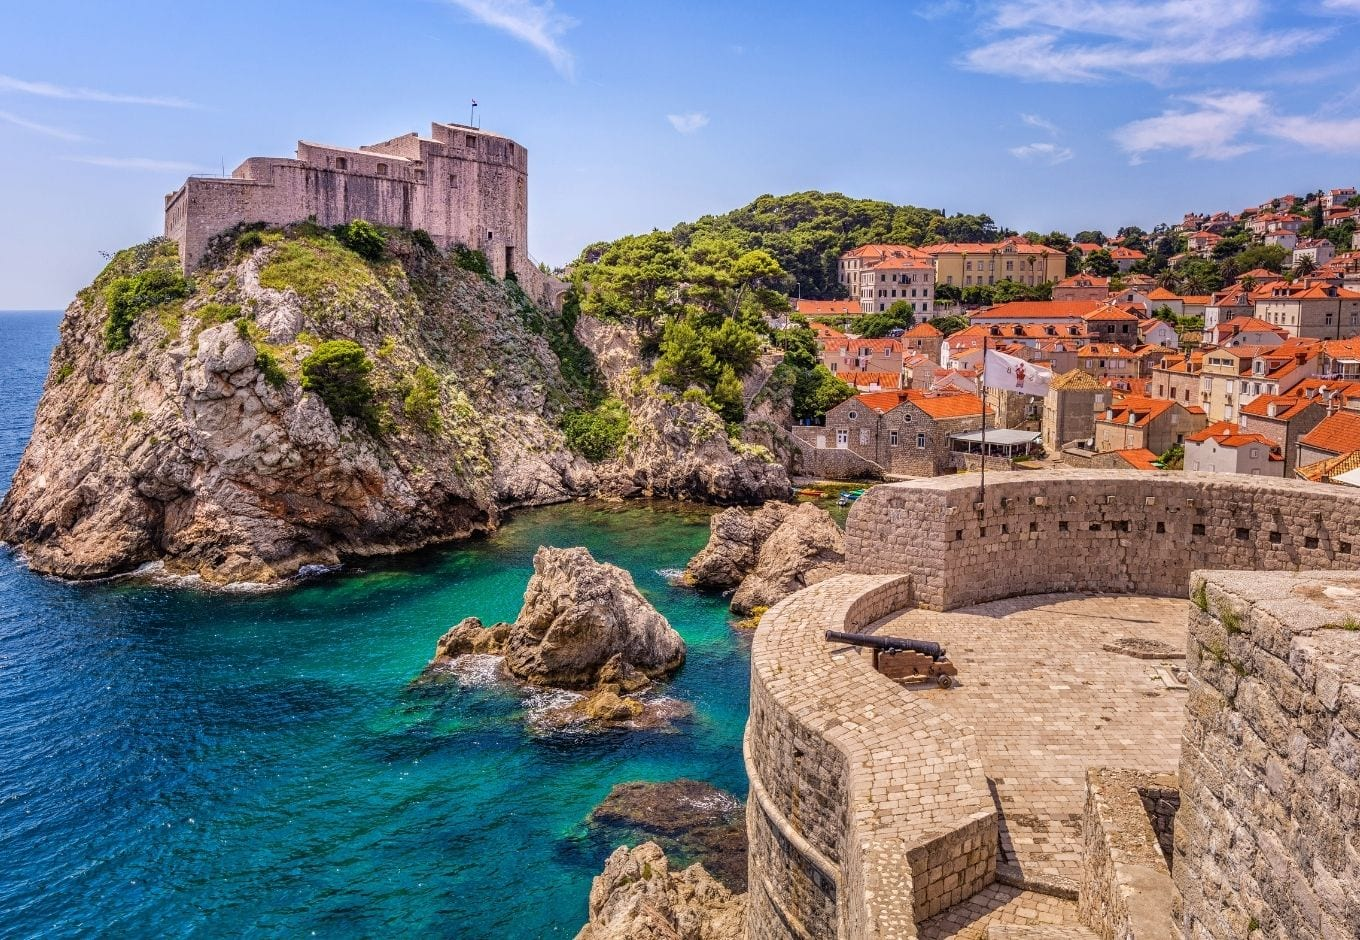 Overlooking the city of Dubrovnik, Croatia, with views of the Adriatic Sea, Fort Lovrijenac and the Old Town.